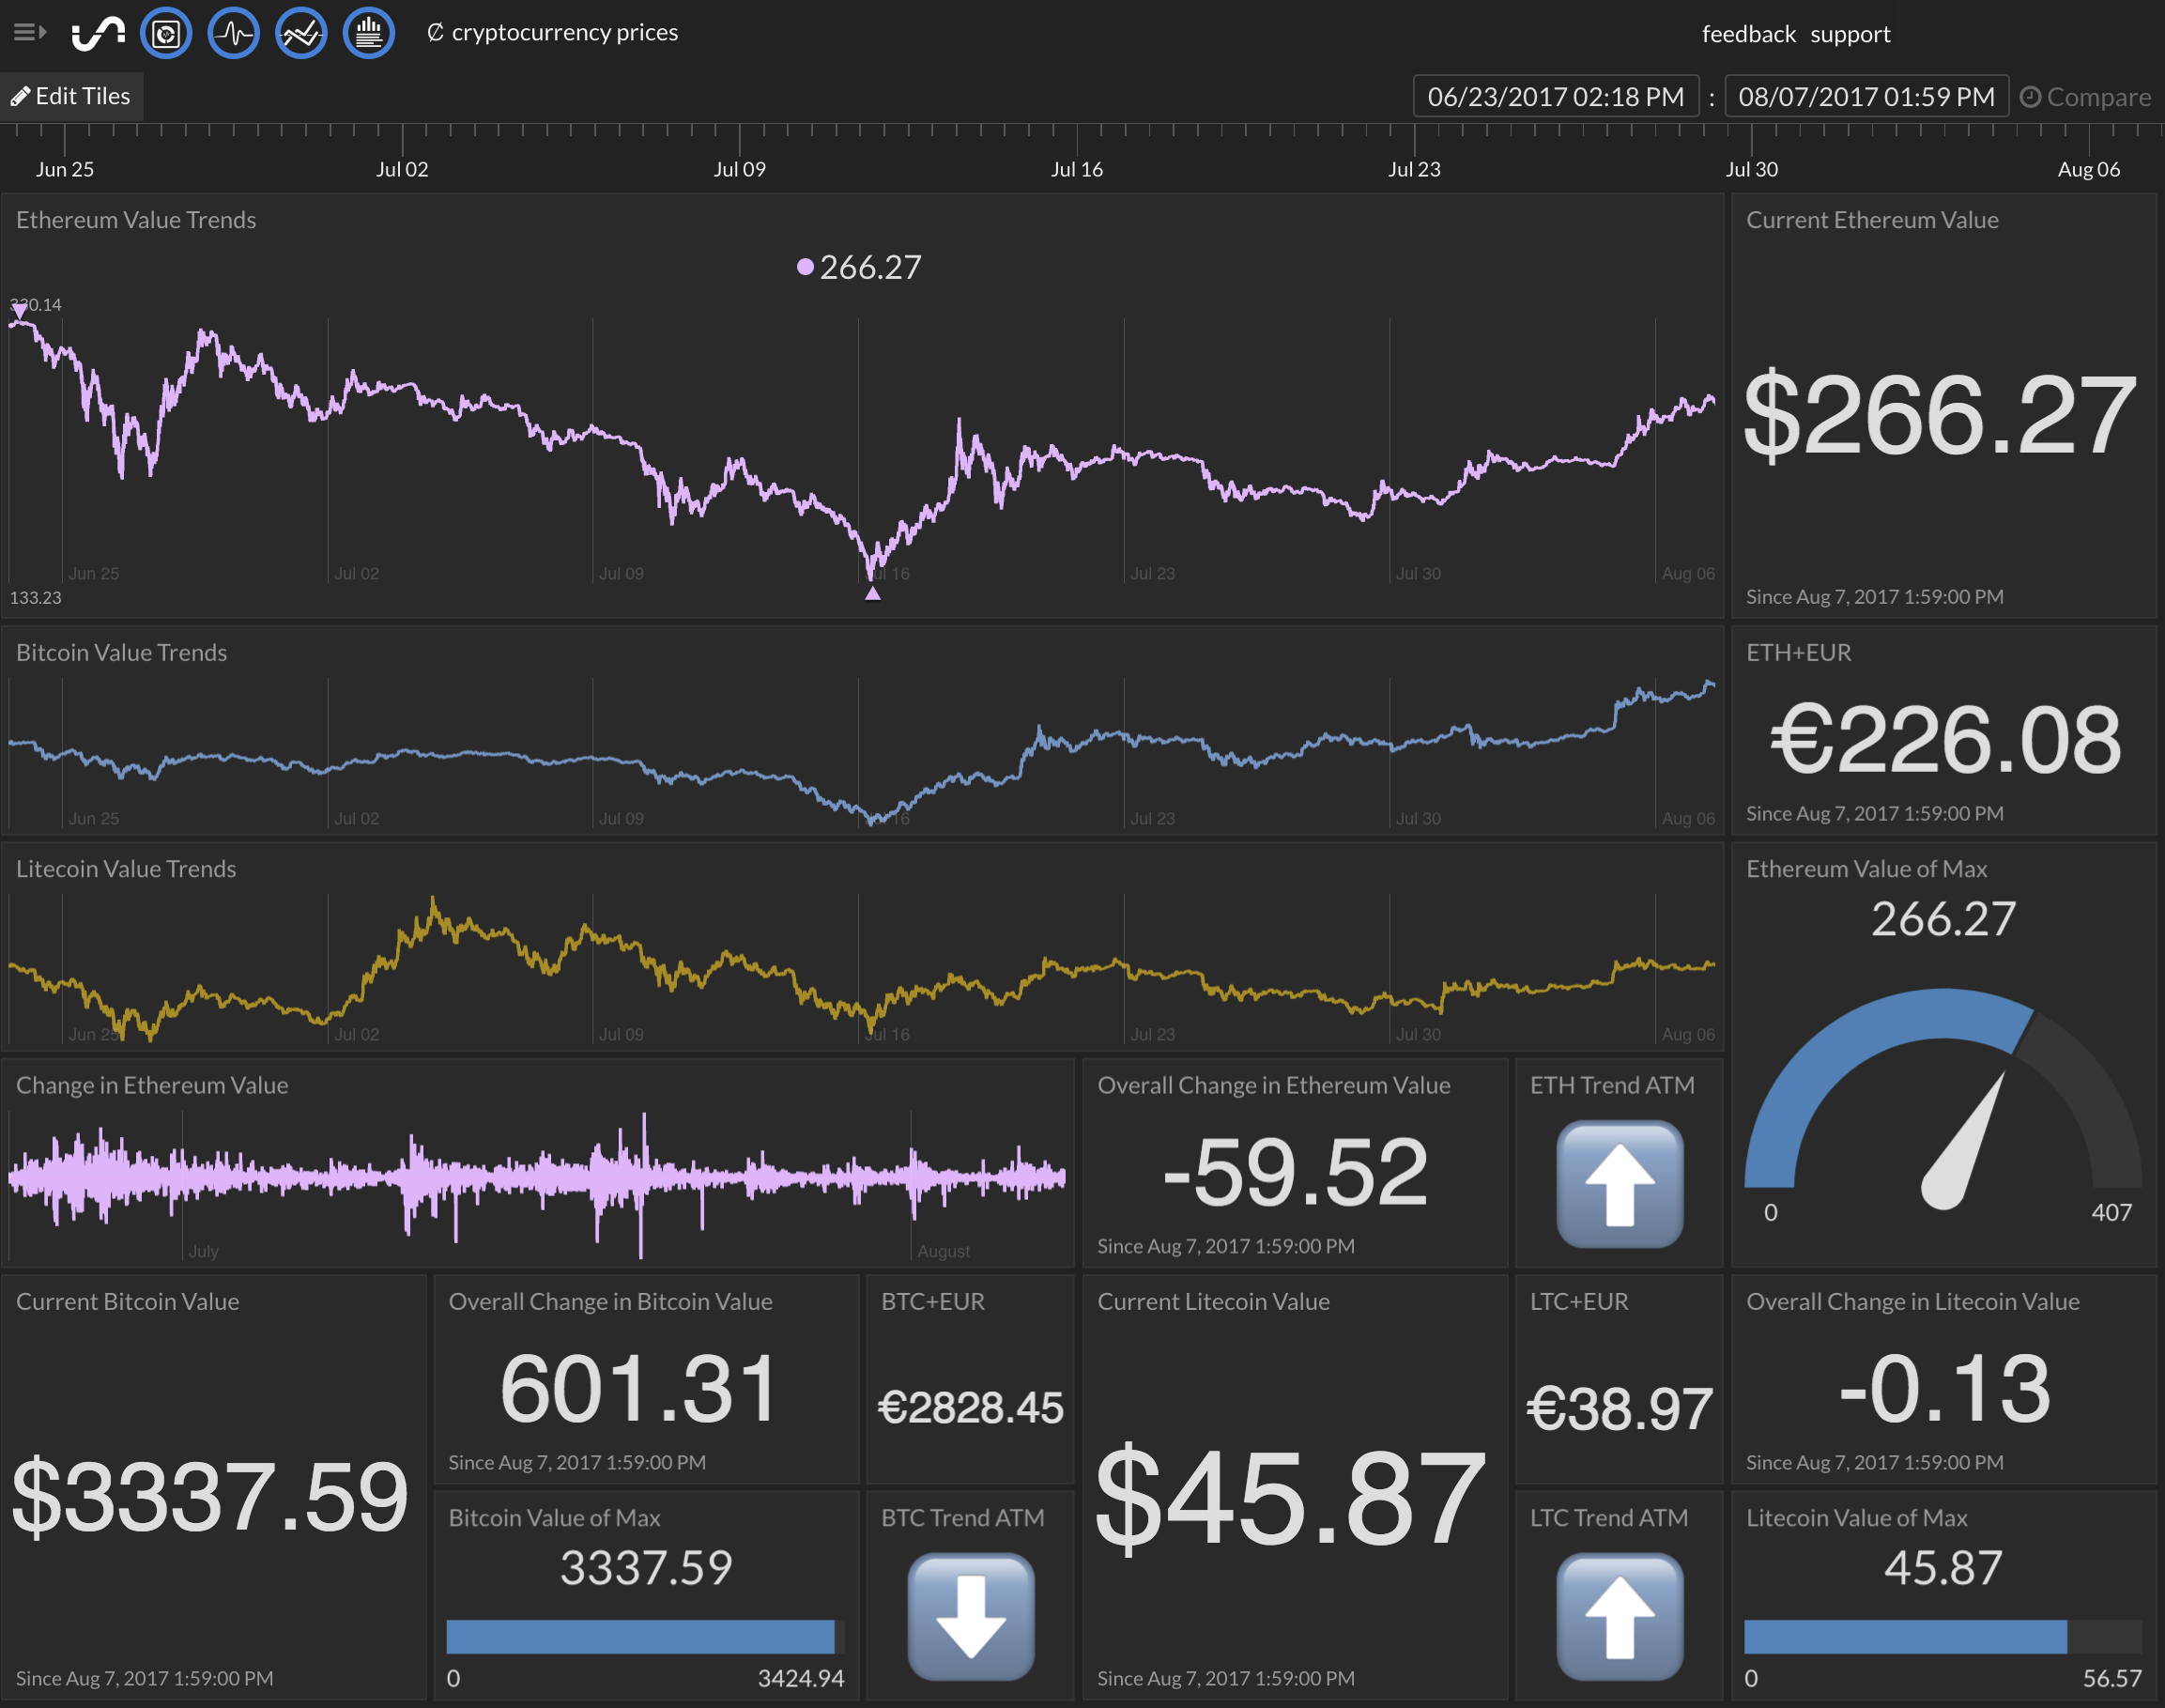 AWSLambdaCryptocurrencyDashboard-1.png